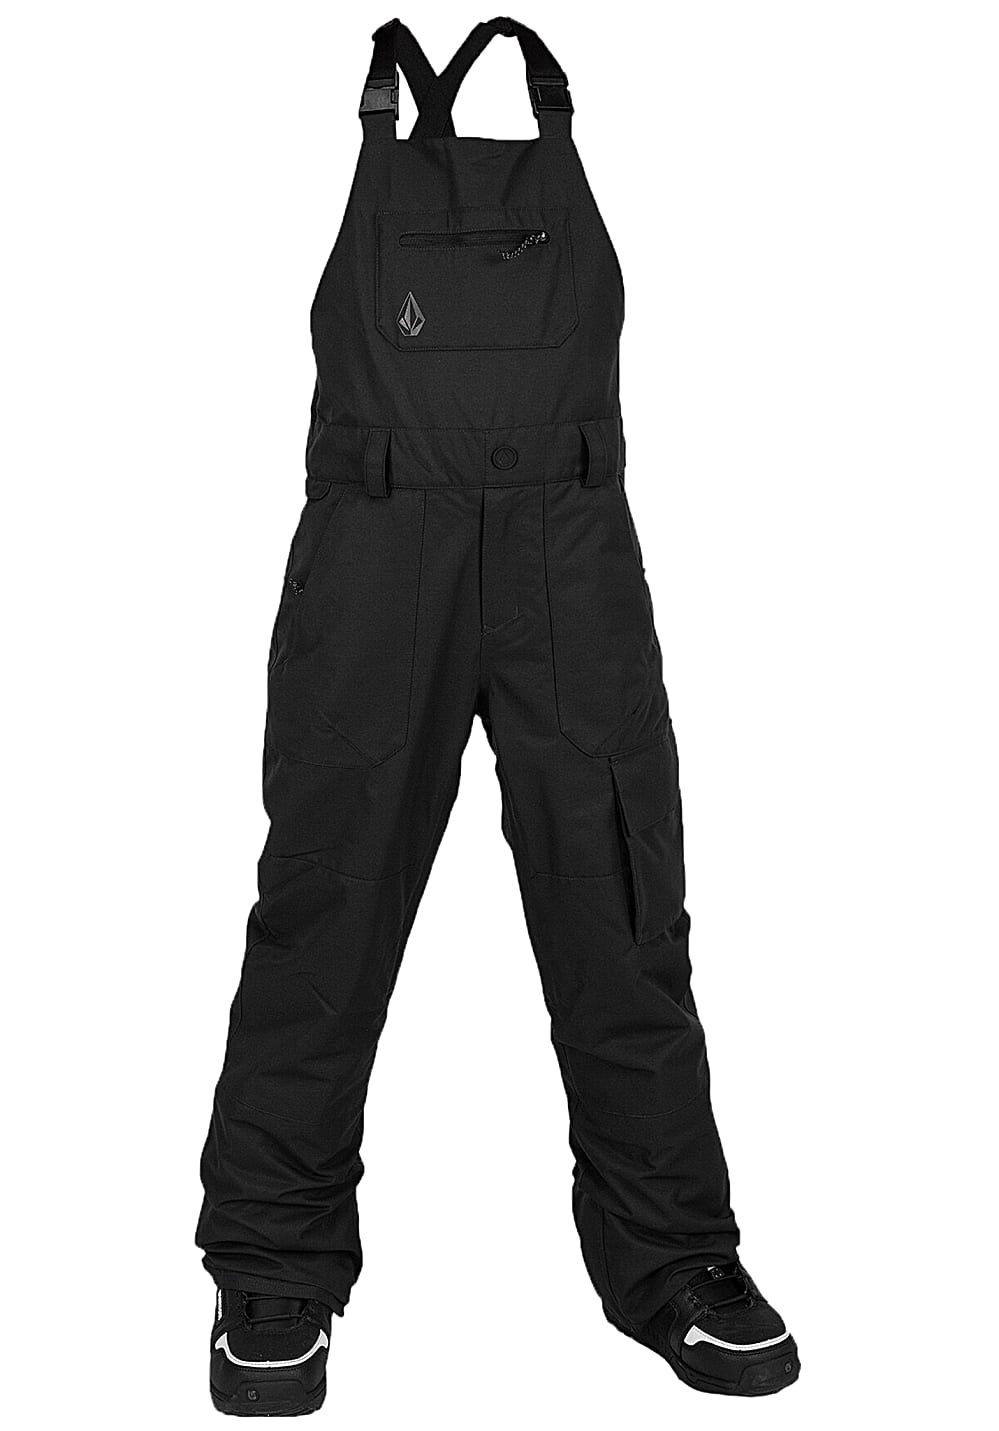 Boysregenwinter - Volcom Barkley Bib Overall Snowboardhose Schwarz - Onlineshop Planet Sports